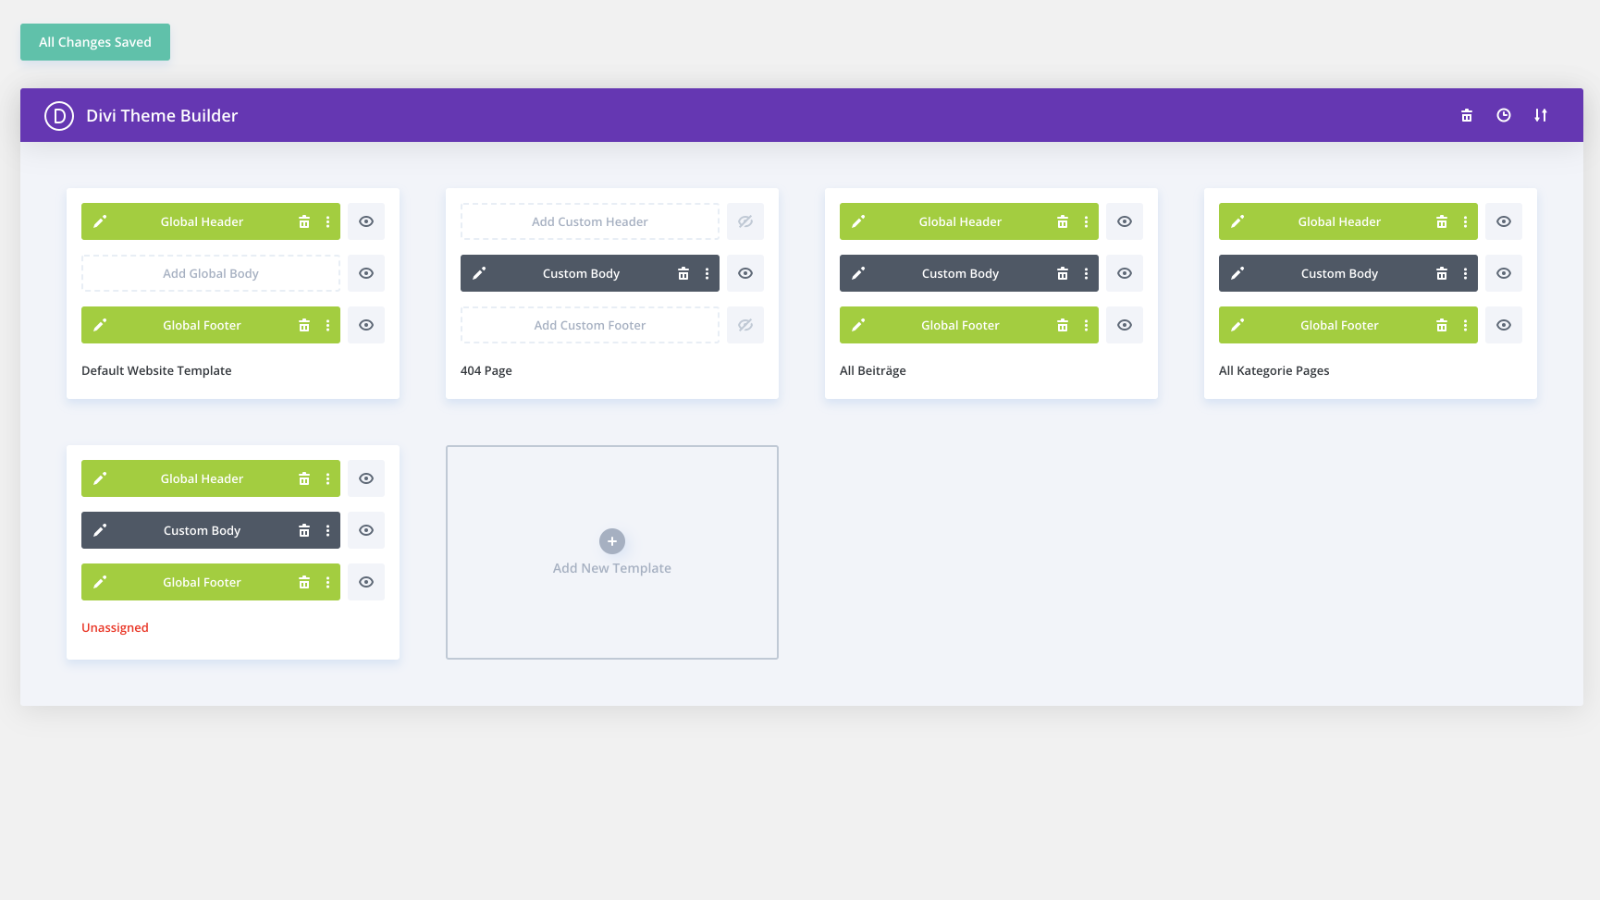 Divi Theme Builder: importierte Layouts